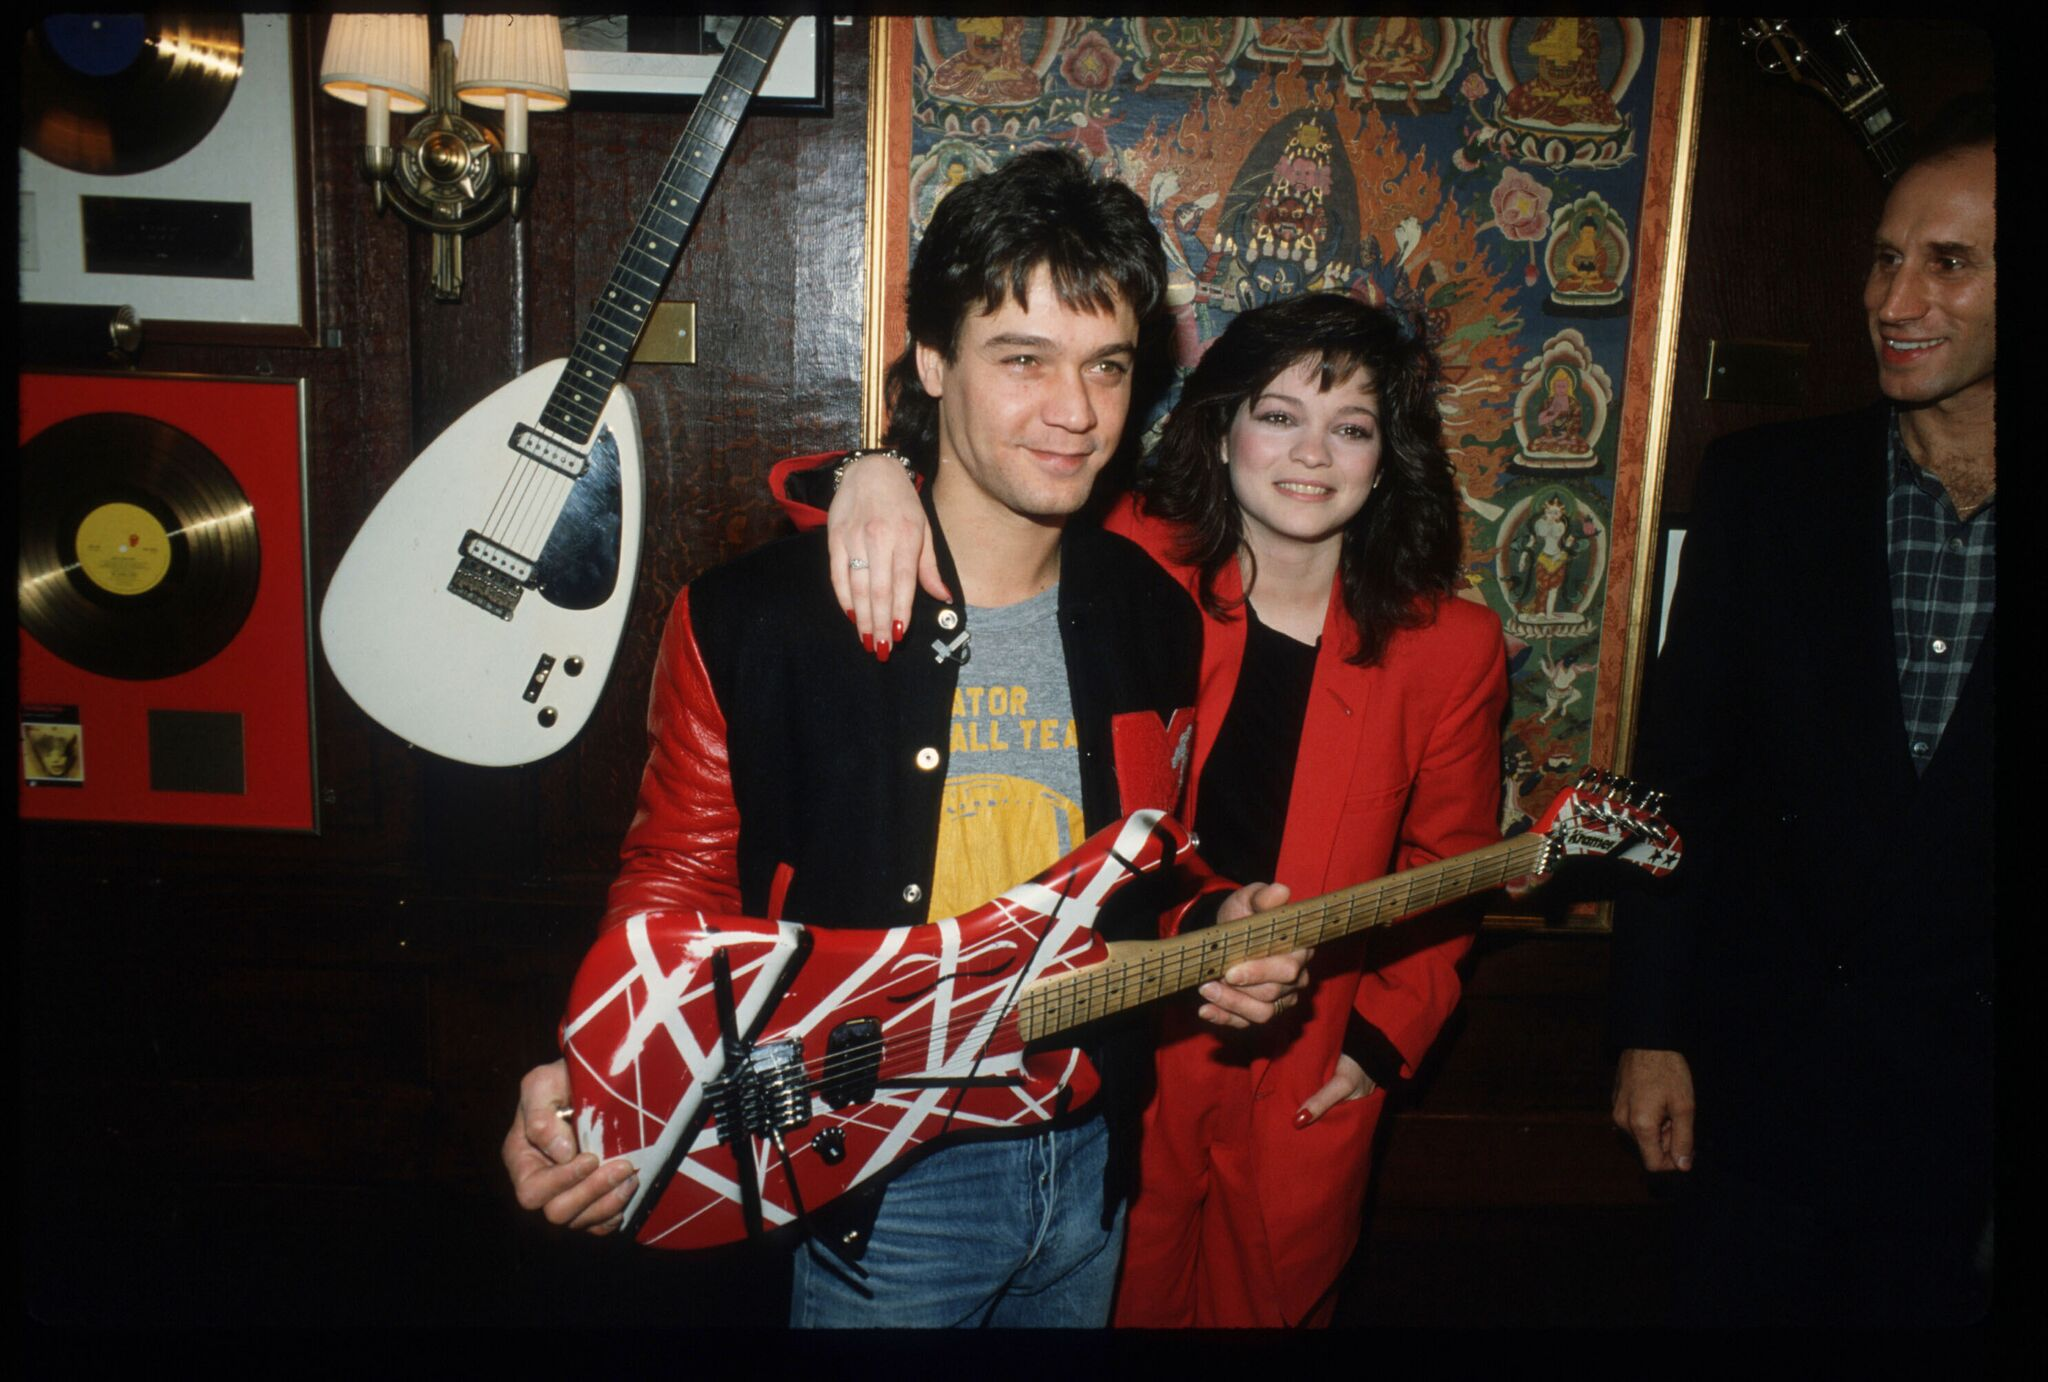 Eddie Van Halen with his wife Valerie Bertinelli February 18, 1995 | Getty Images